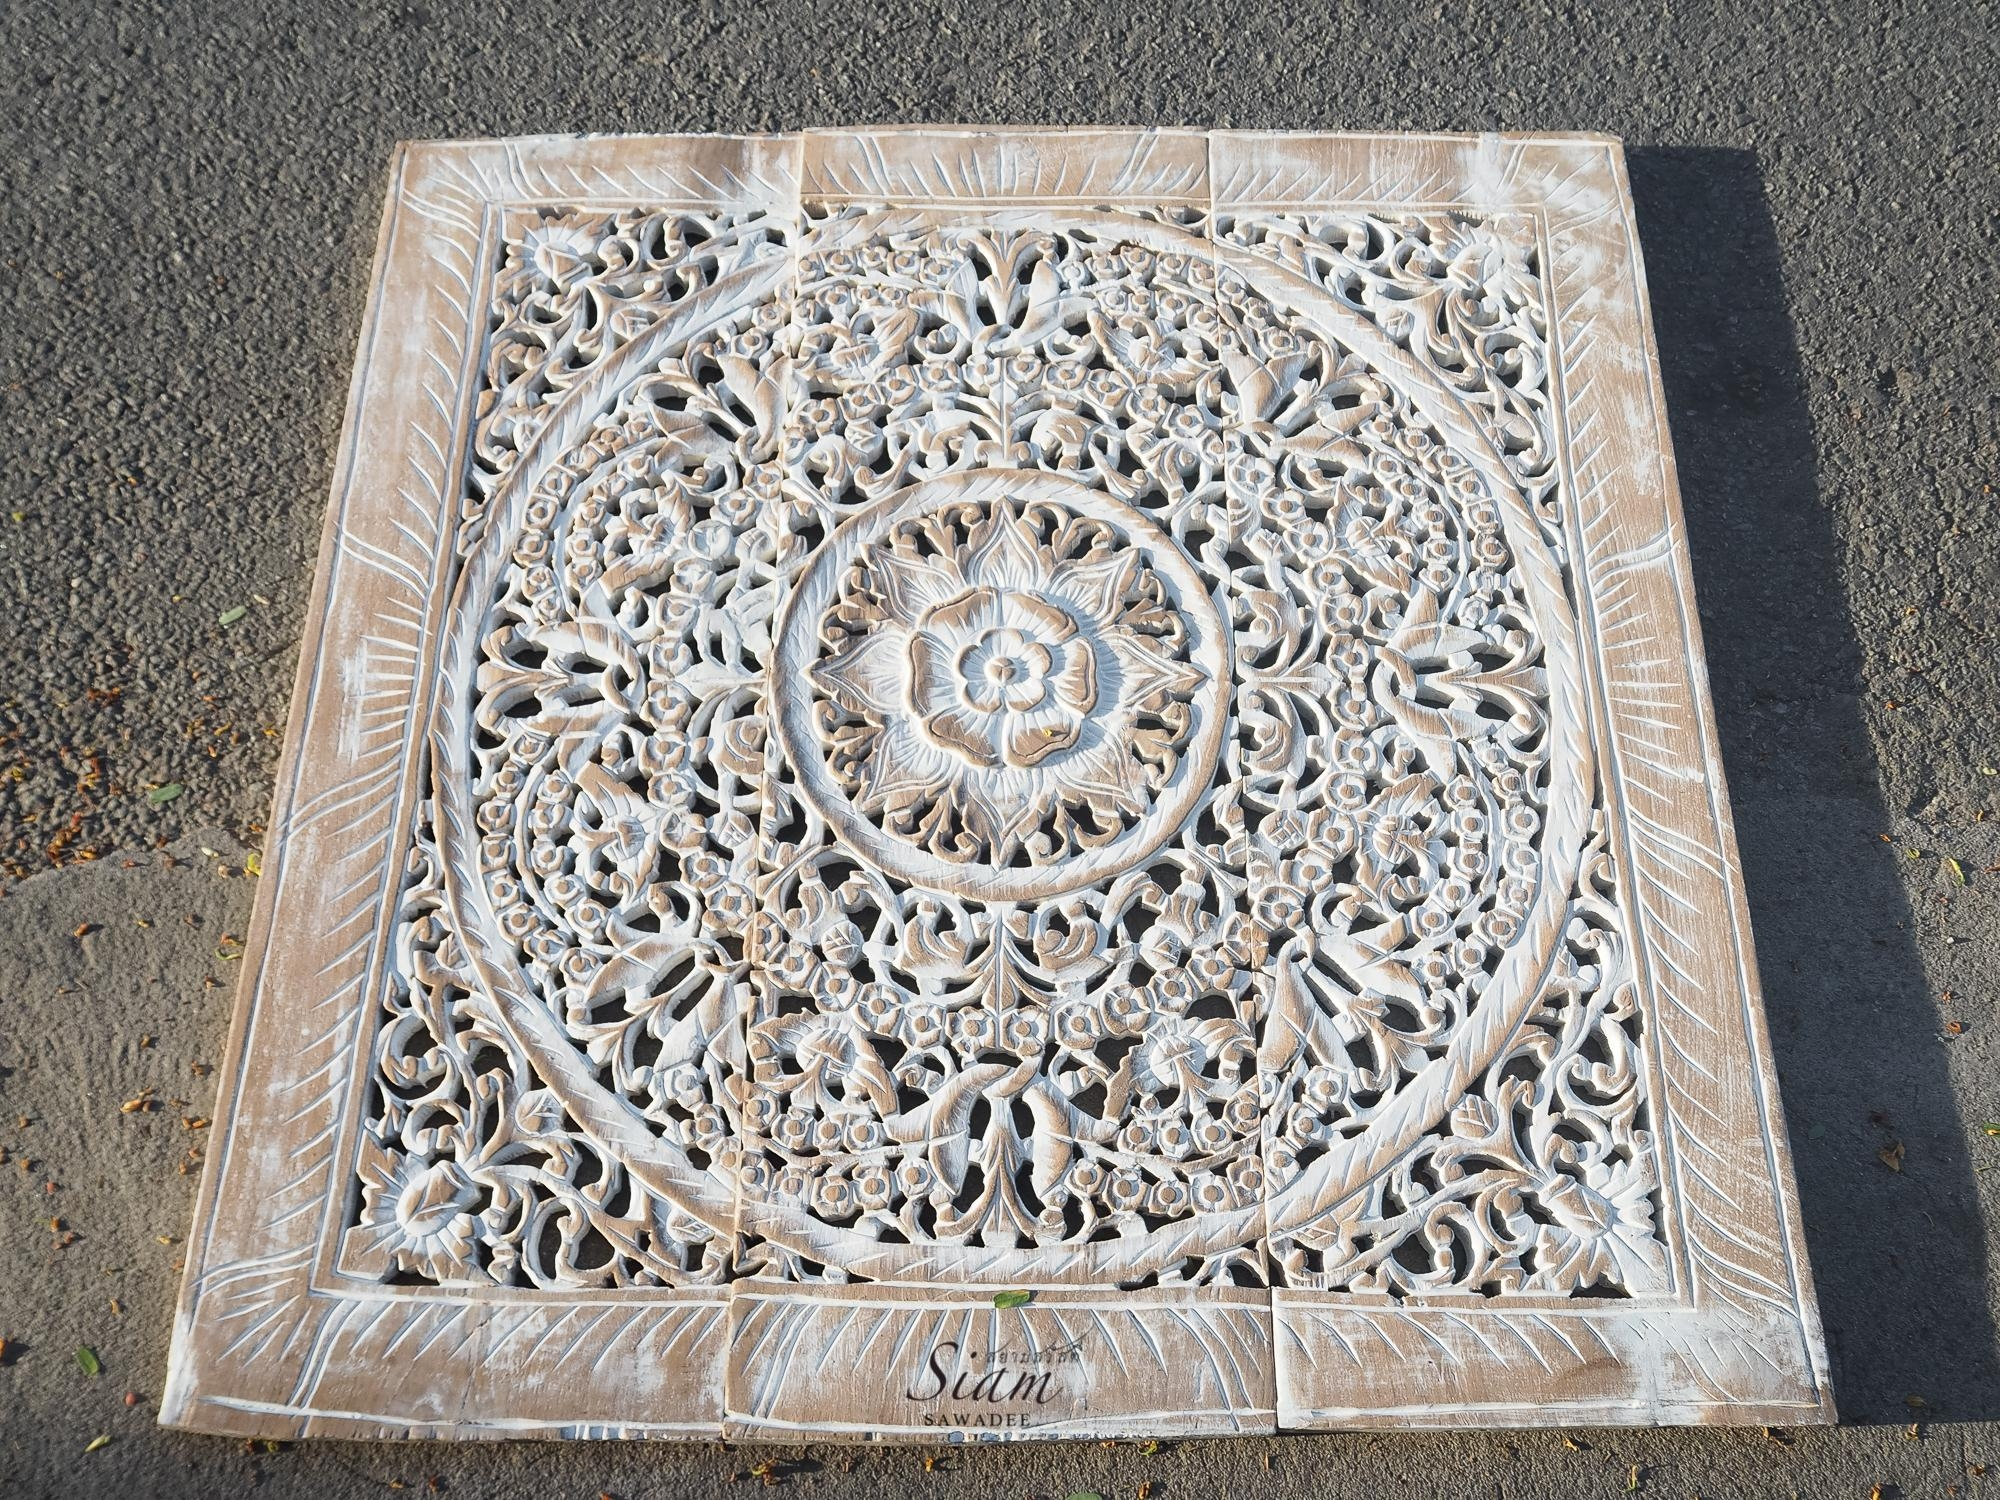 Balinese Antique Wood Carving Wall Art Panel – Siam Sawadee Within Wood Carved Wall Art Panels (Image 1 of 20)